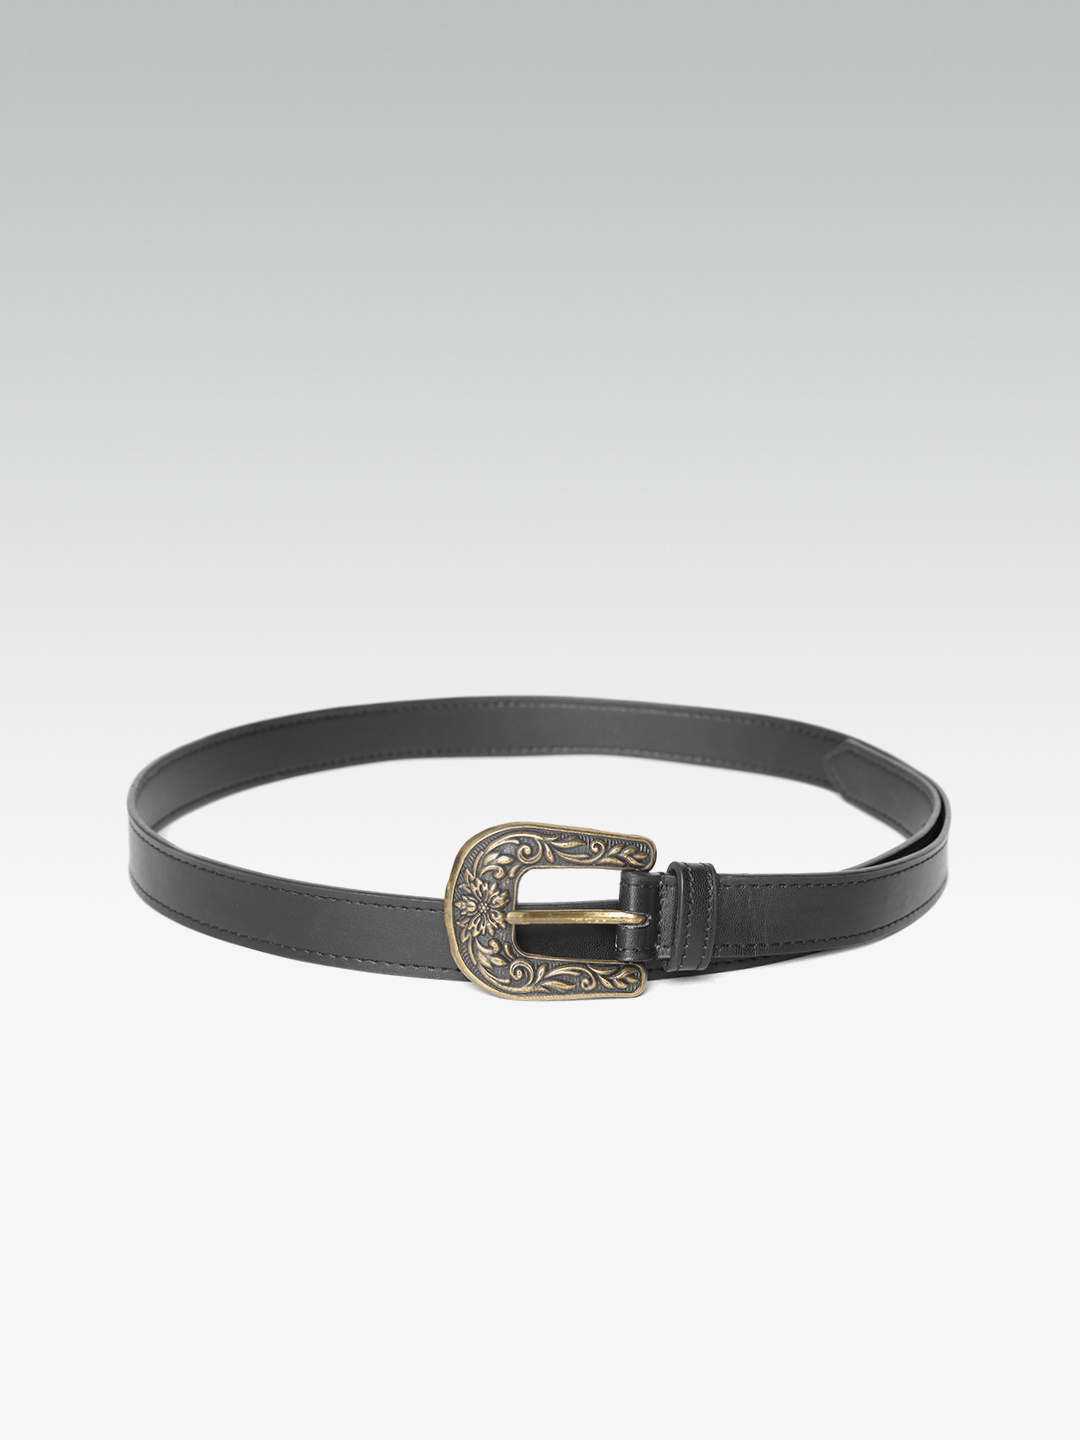 Belts-The Vintage Spin Black Belt3